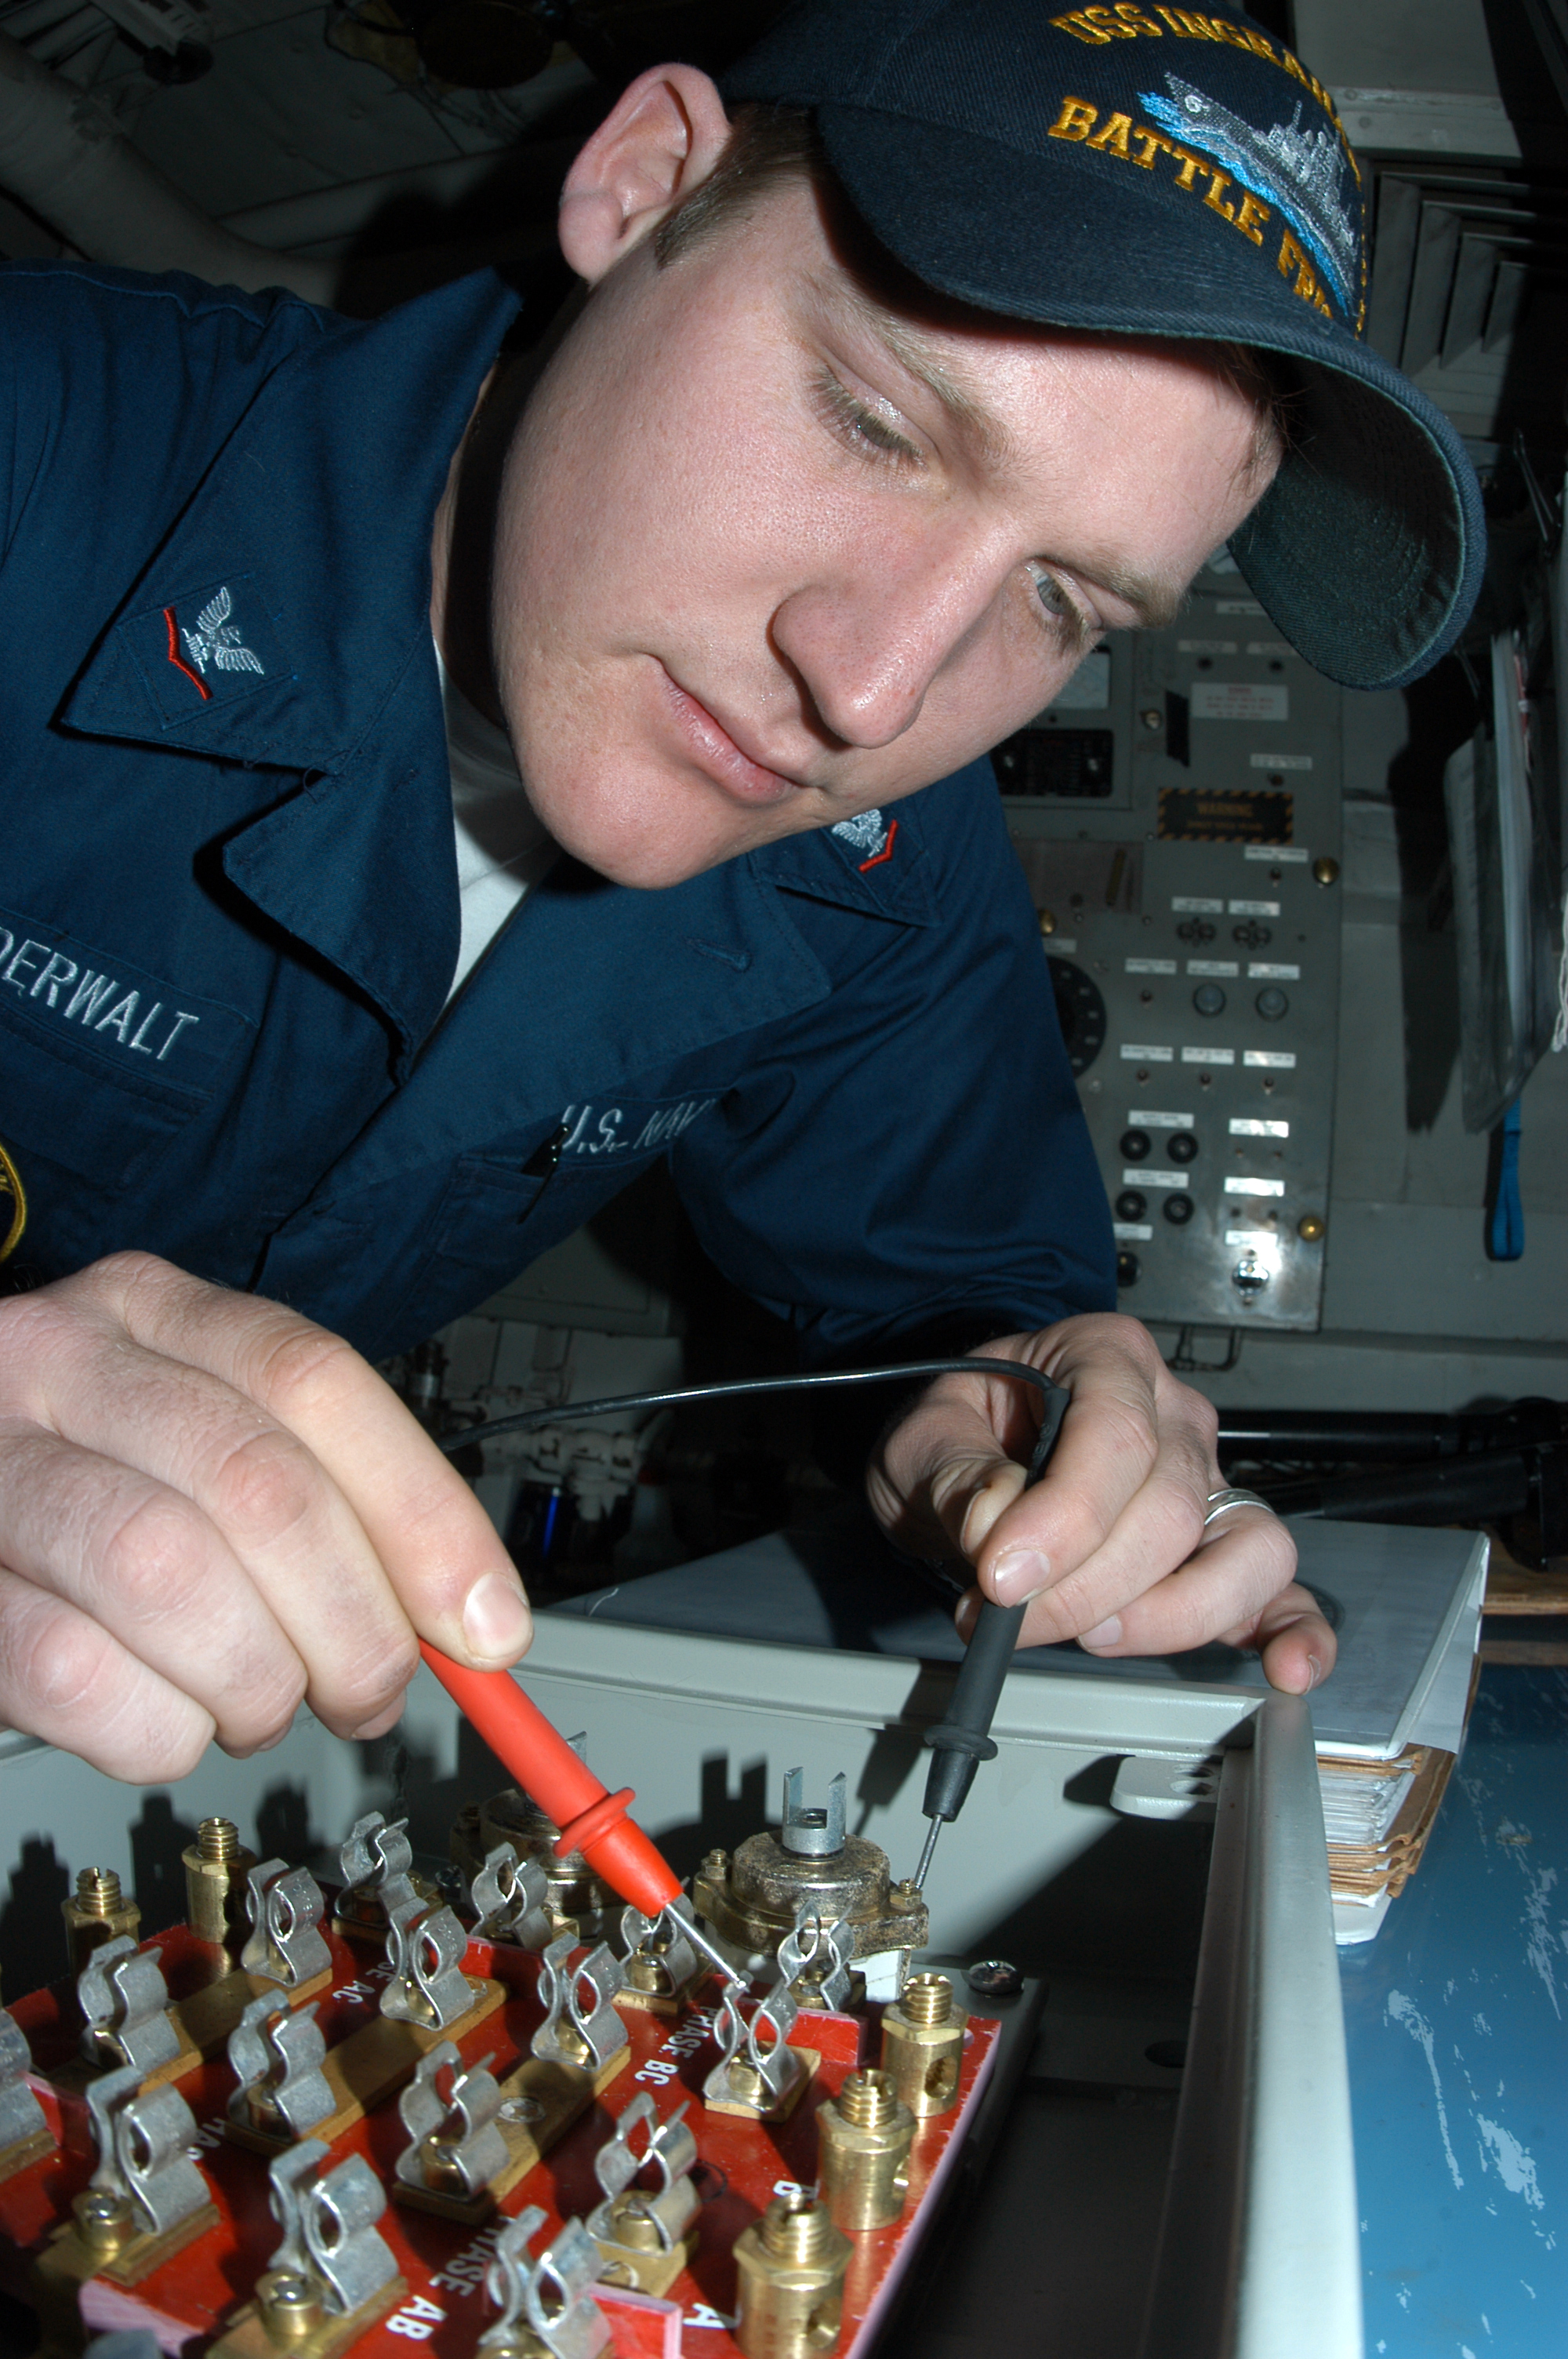 US_Navy_050315 N 3390M 278_Electrician%27s_Mate_3rd_Class_Michael_Vanderwalt%2C_troubleshoots_a_fuse_box_with_a_multimeter_aboard_the_guided_missile_frigate_USS_Ingraham_%28FFG_61%29 file us navy 050315 n 3390m 278 electrician's mate 3rd class navy mk2 fuse ammo box at virtualis.co